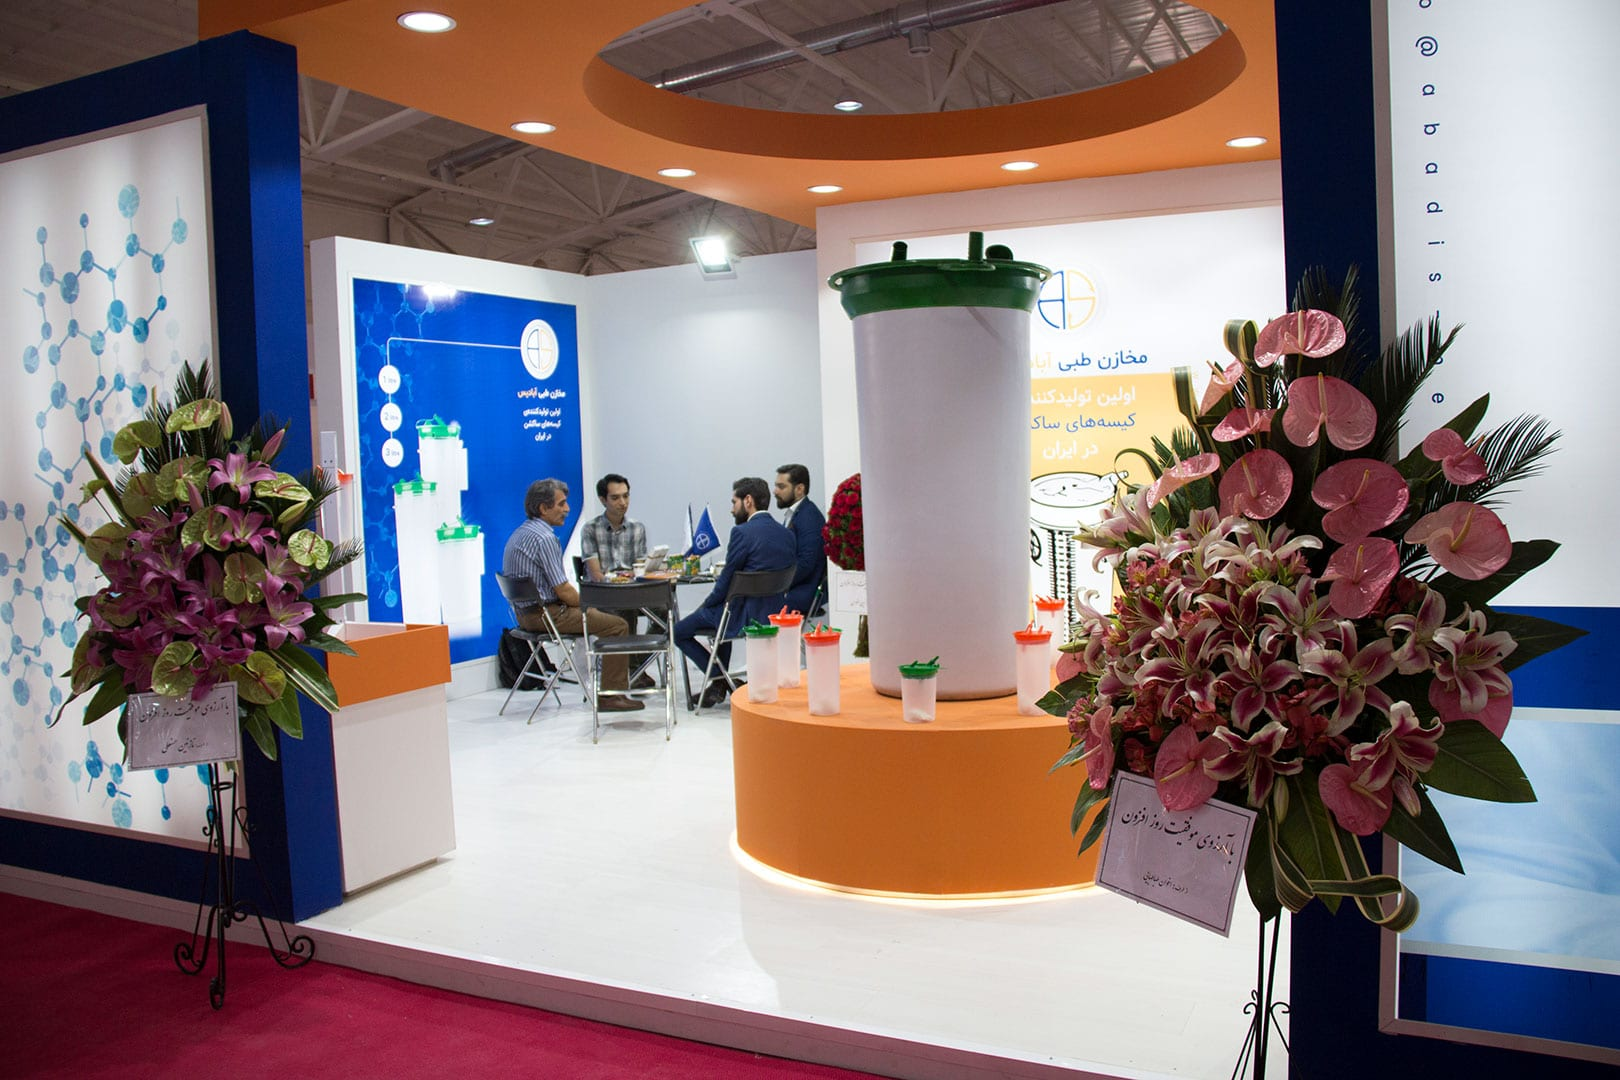 The report on the presence of Abadis at the 21st International Iran Health Exhibition(Part3)